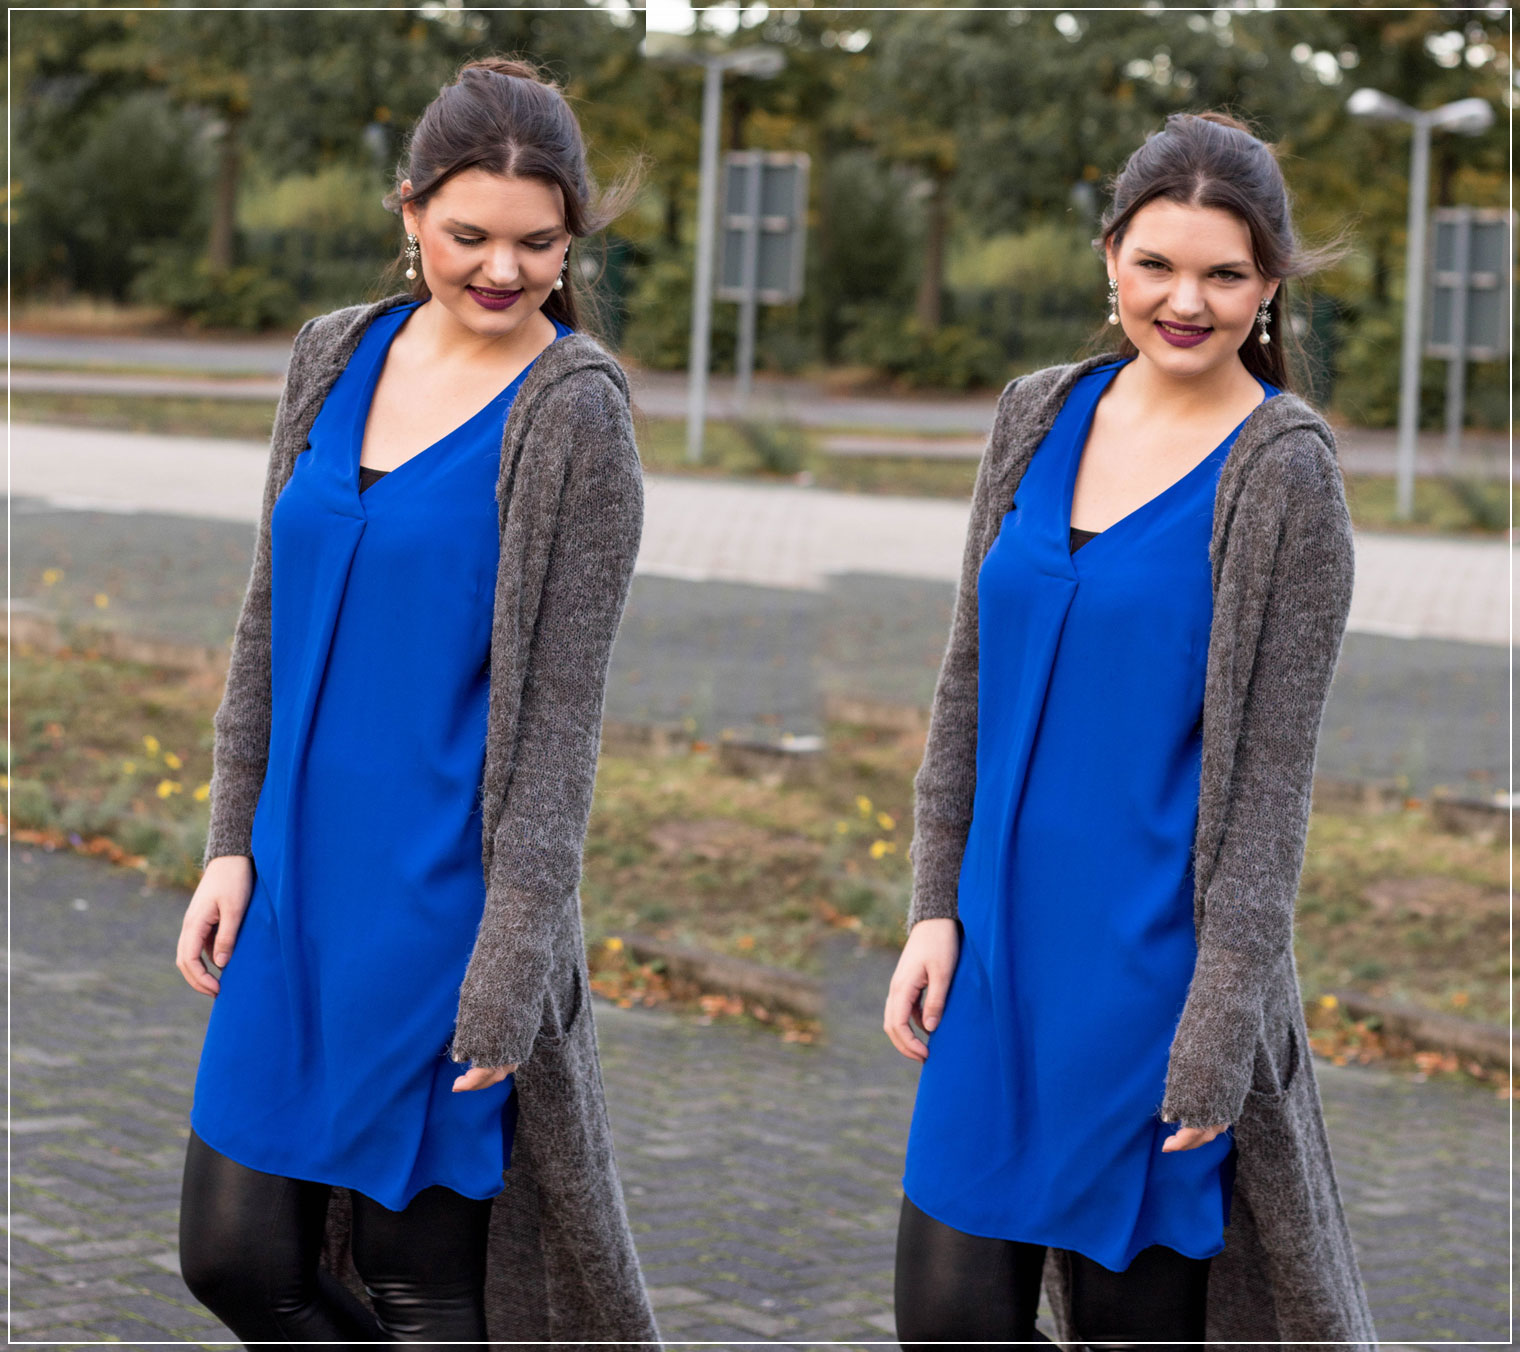 Pantone, Trendfarbe, Classic Blue, Winteroutfit, Modetrend, Styleguide, Outfitinspiration, Modebloggerin, Fashionbloggerin, Modeblog, Ruhrgebiet